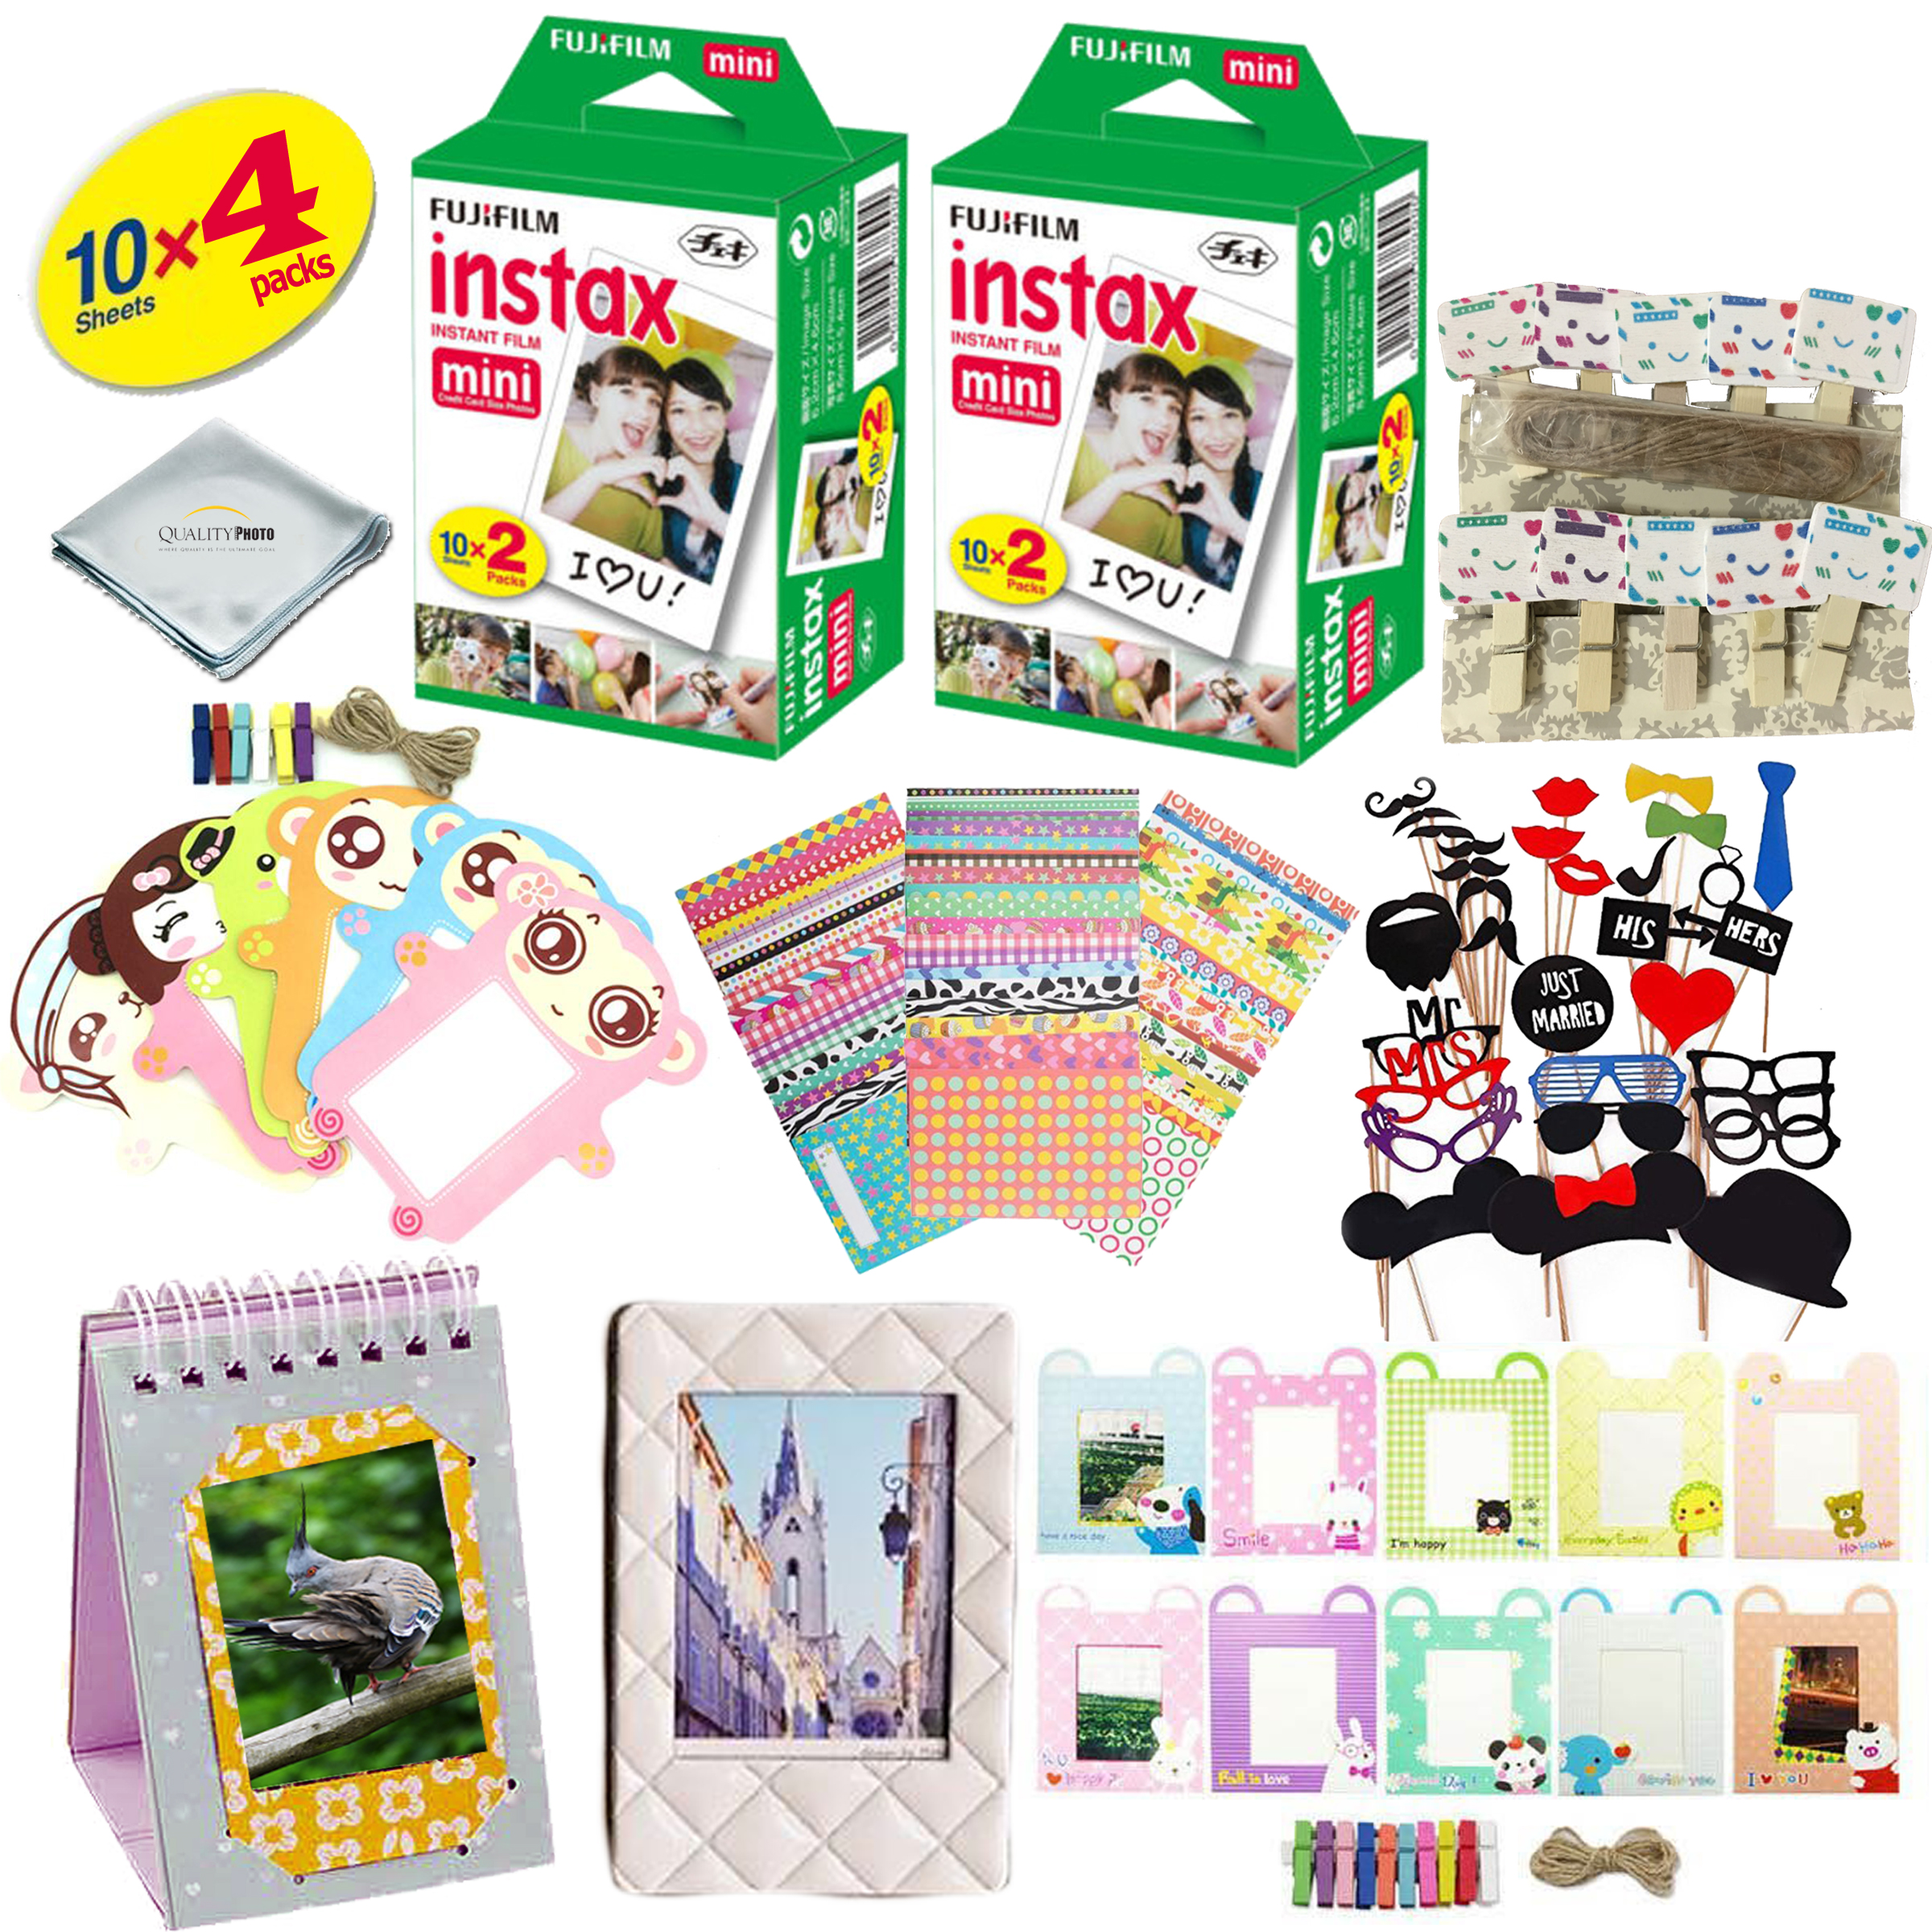 Fujifilm Instax Mini 9 & Mini 8 Camera Accessory KIT Includes - Fuji Instant Film 40 SHEETS +  Over 60 PCS Premium Bundle For Fujifilm Instax Mini 8 & Mini 9 Films